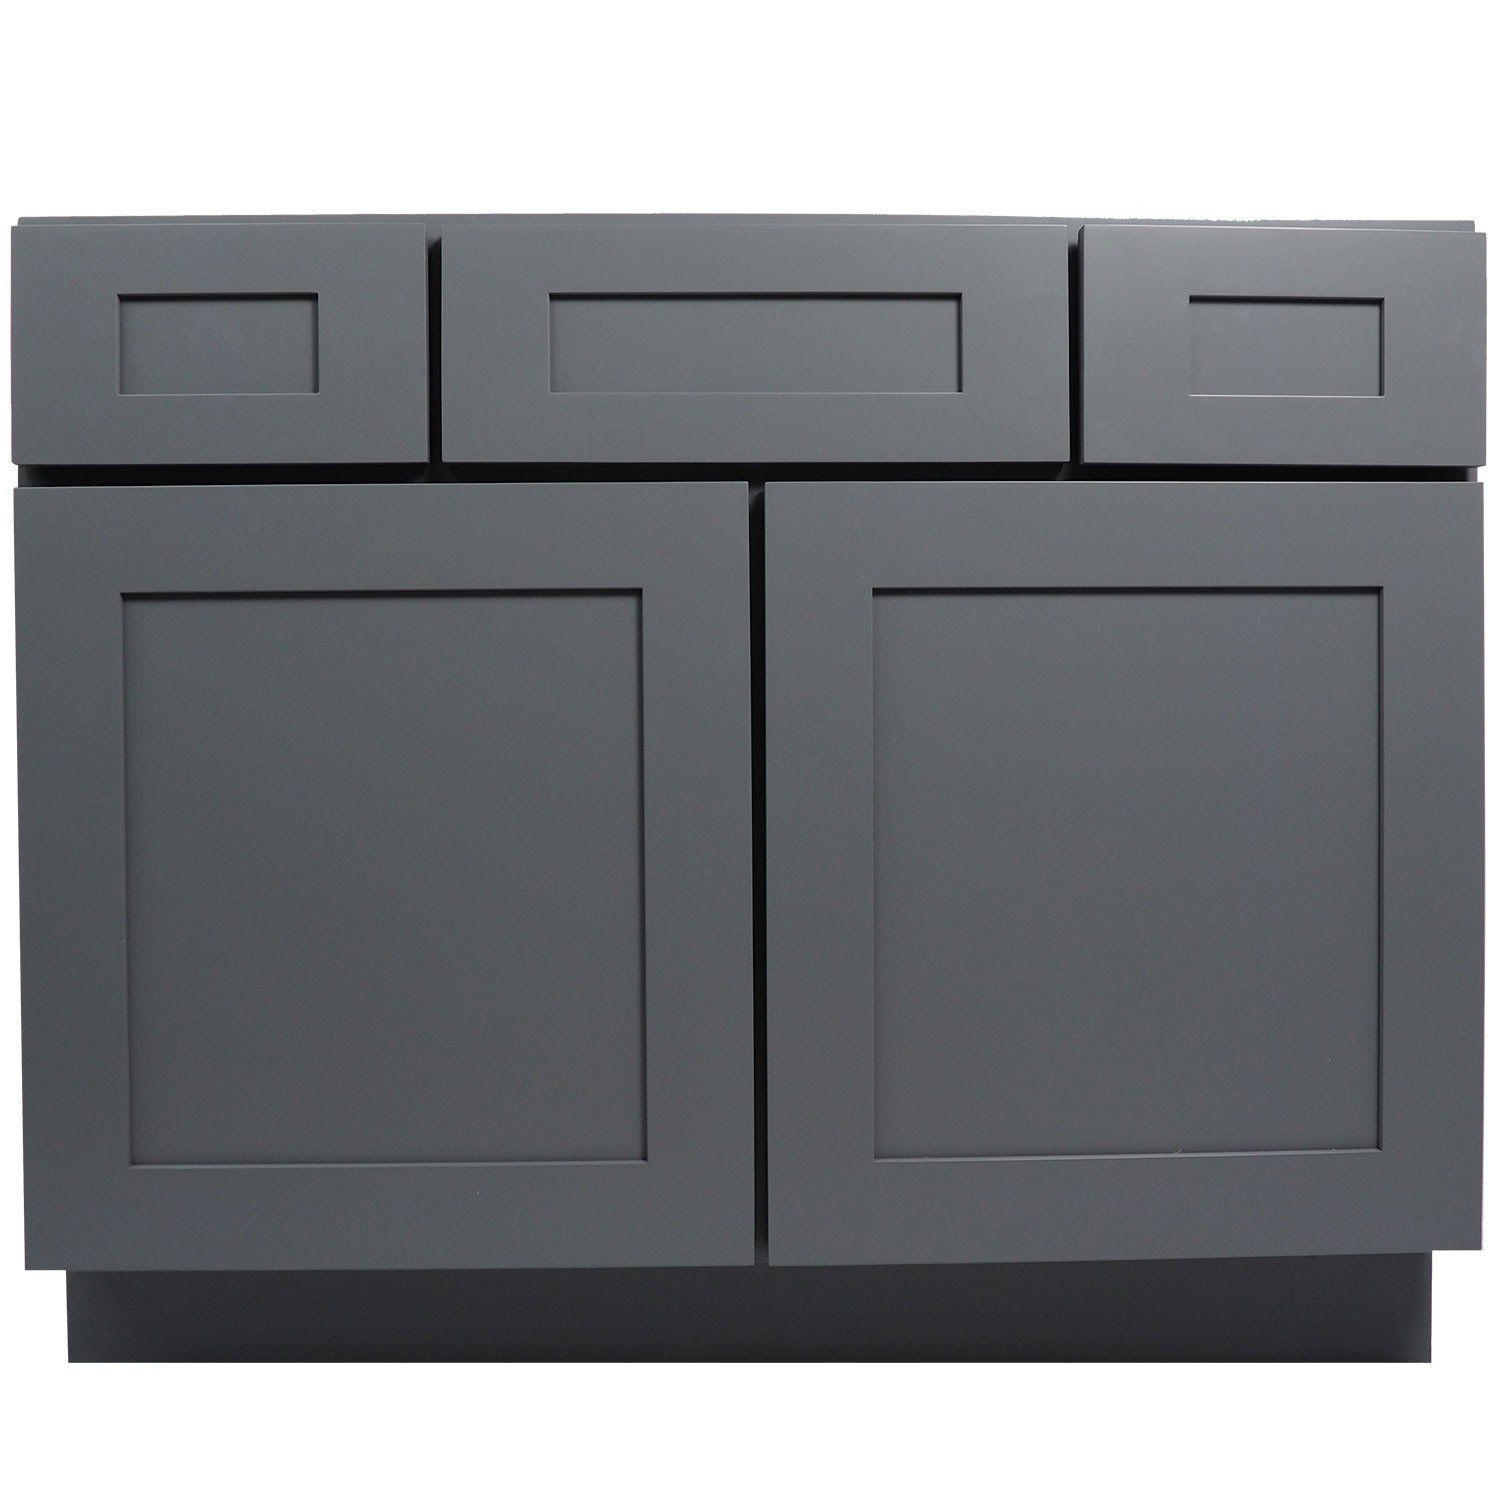 Modular 42 Inch Bathroom Vanity Cabinet In Solid Wood Shaker Gray With Soft pertaining to 42 Bathroom Vanity Cabinets